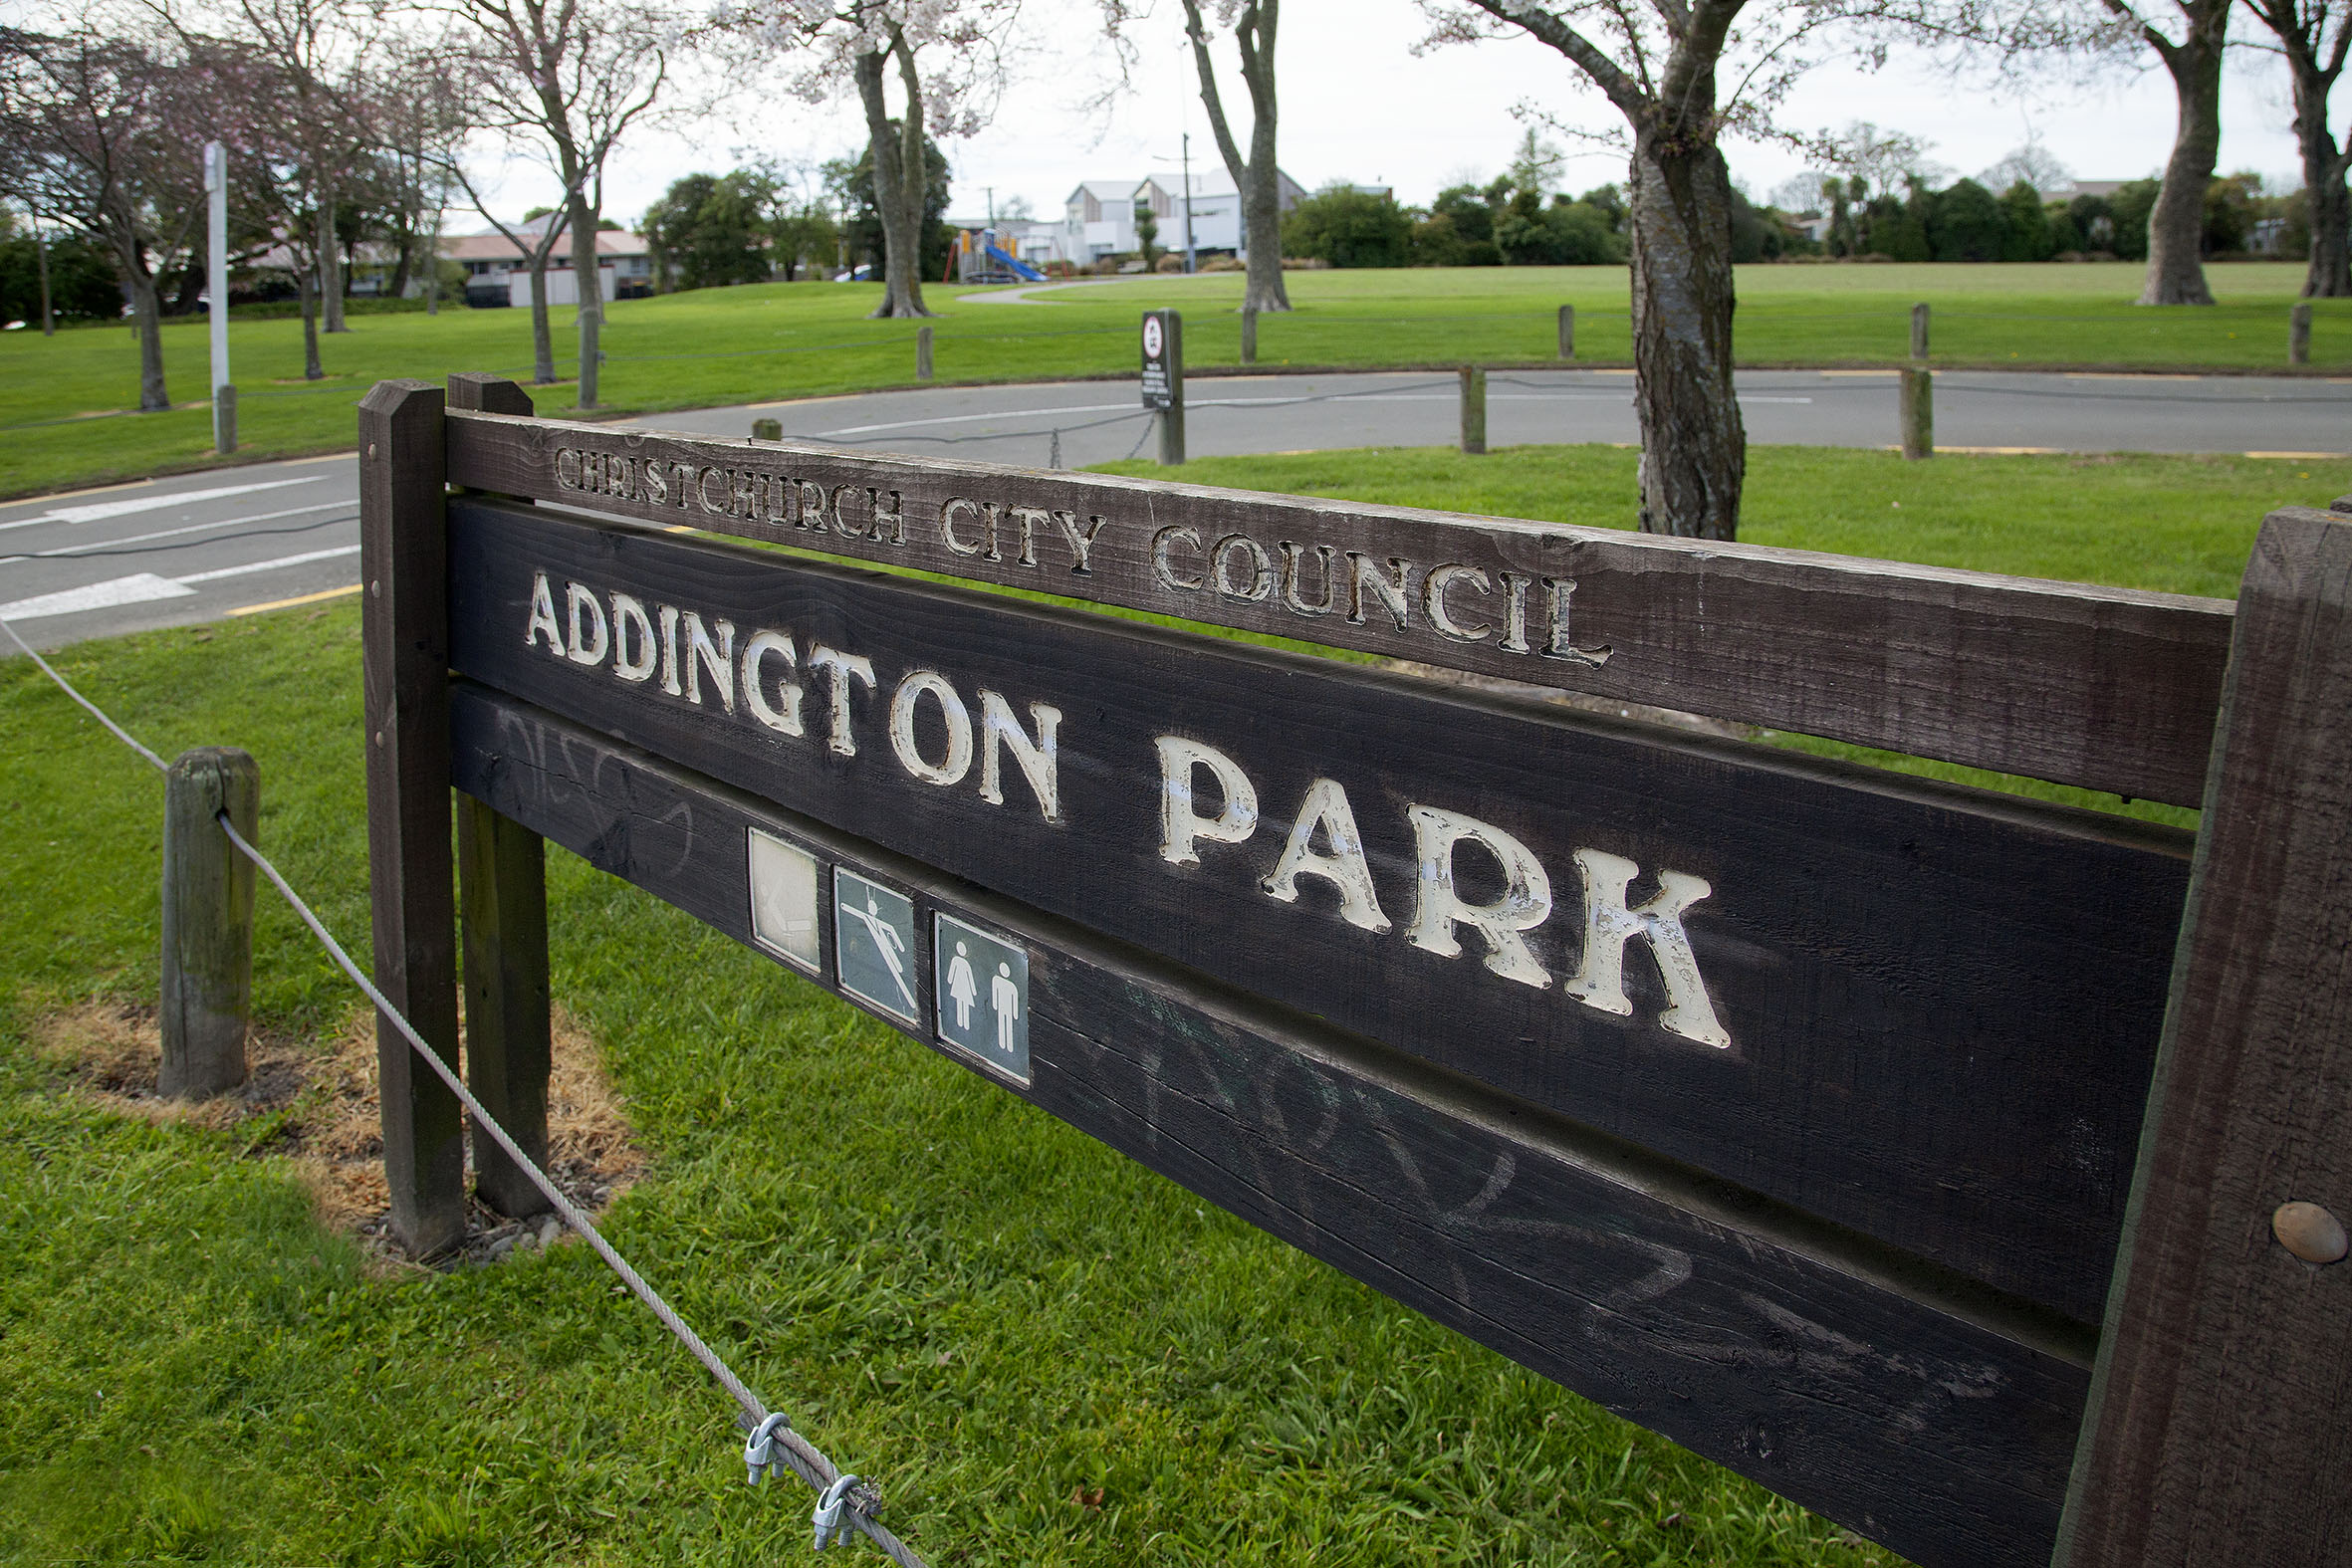 Several improvements have been mooted for Addington Park to make the area safer and to reduce...